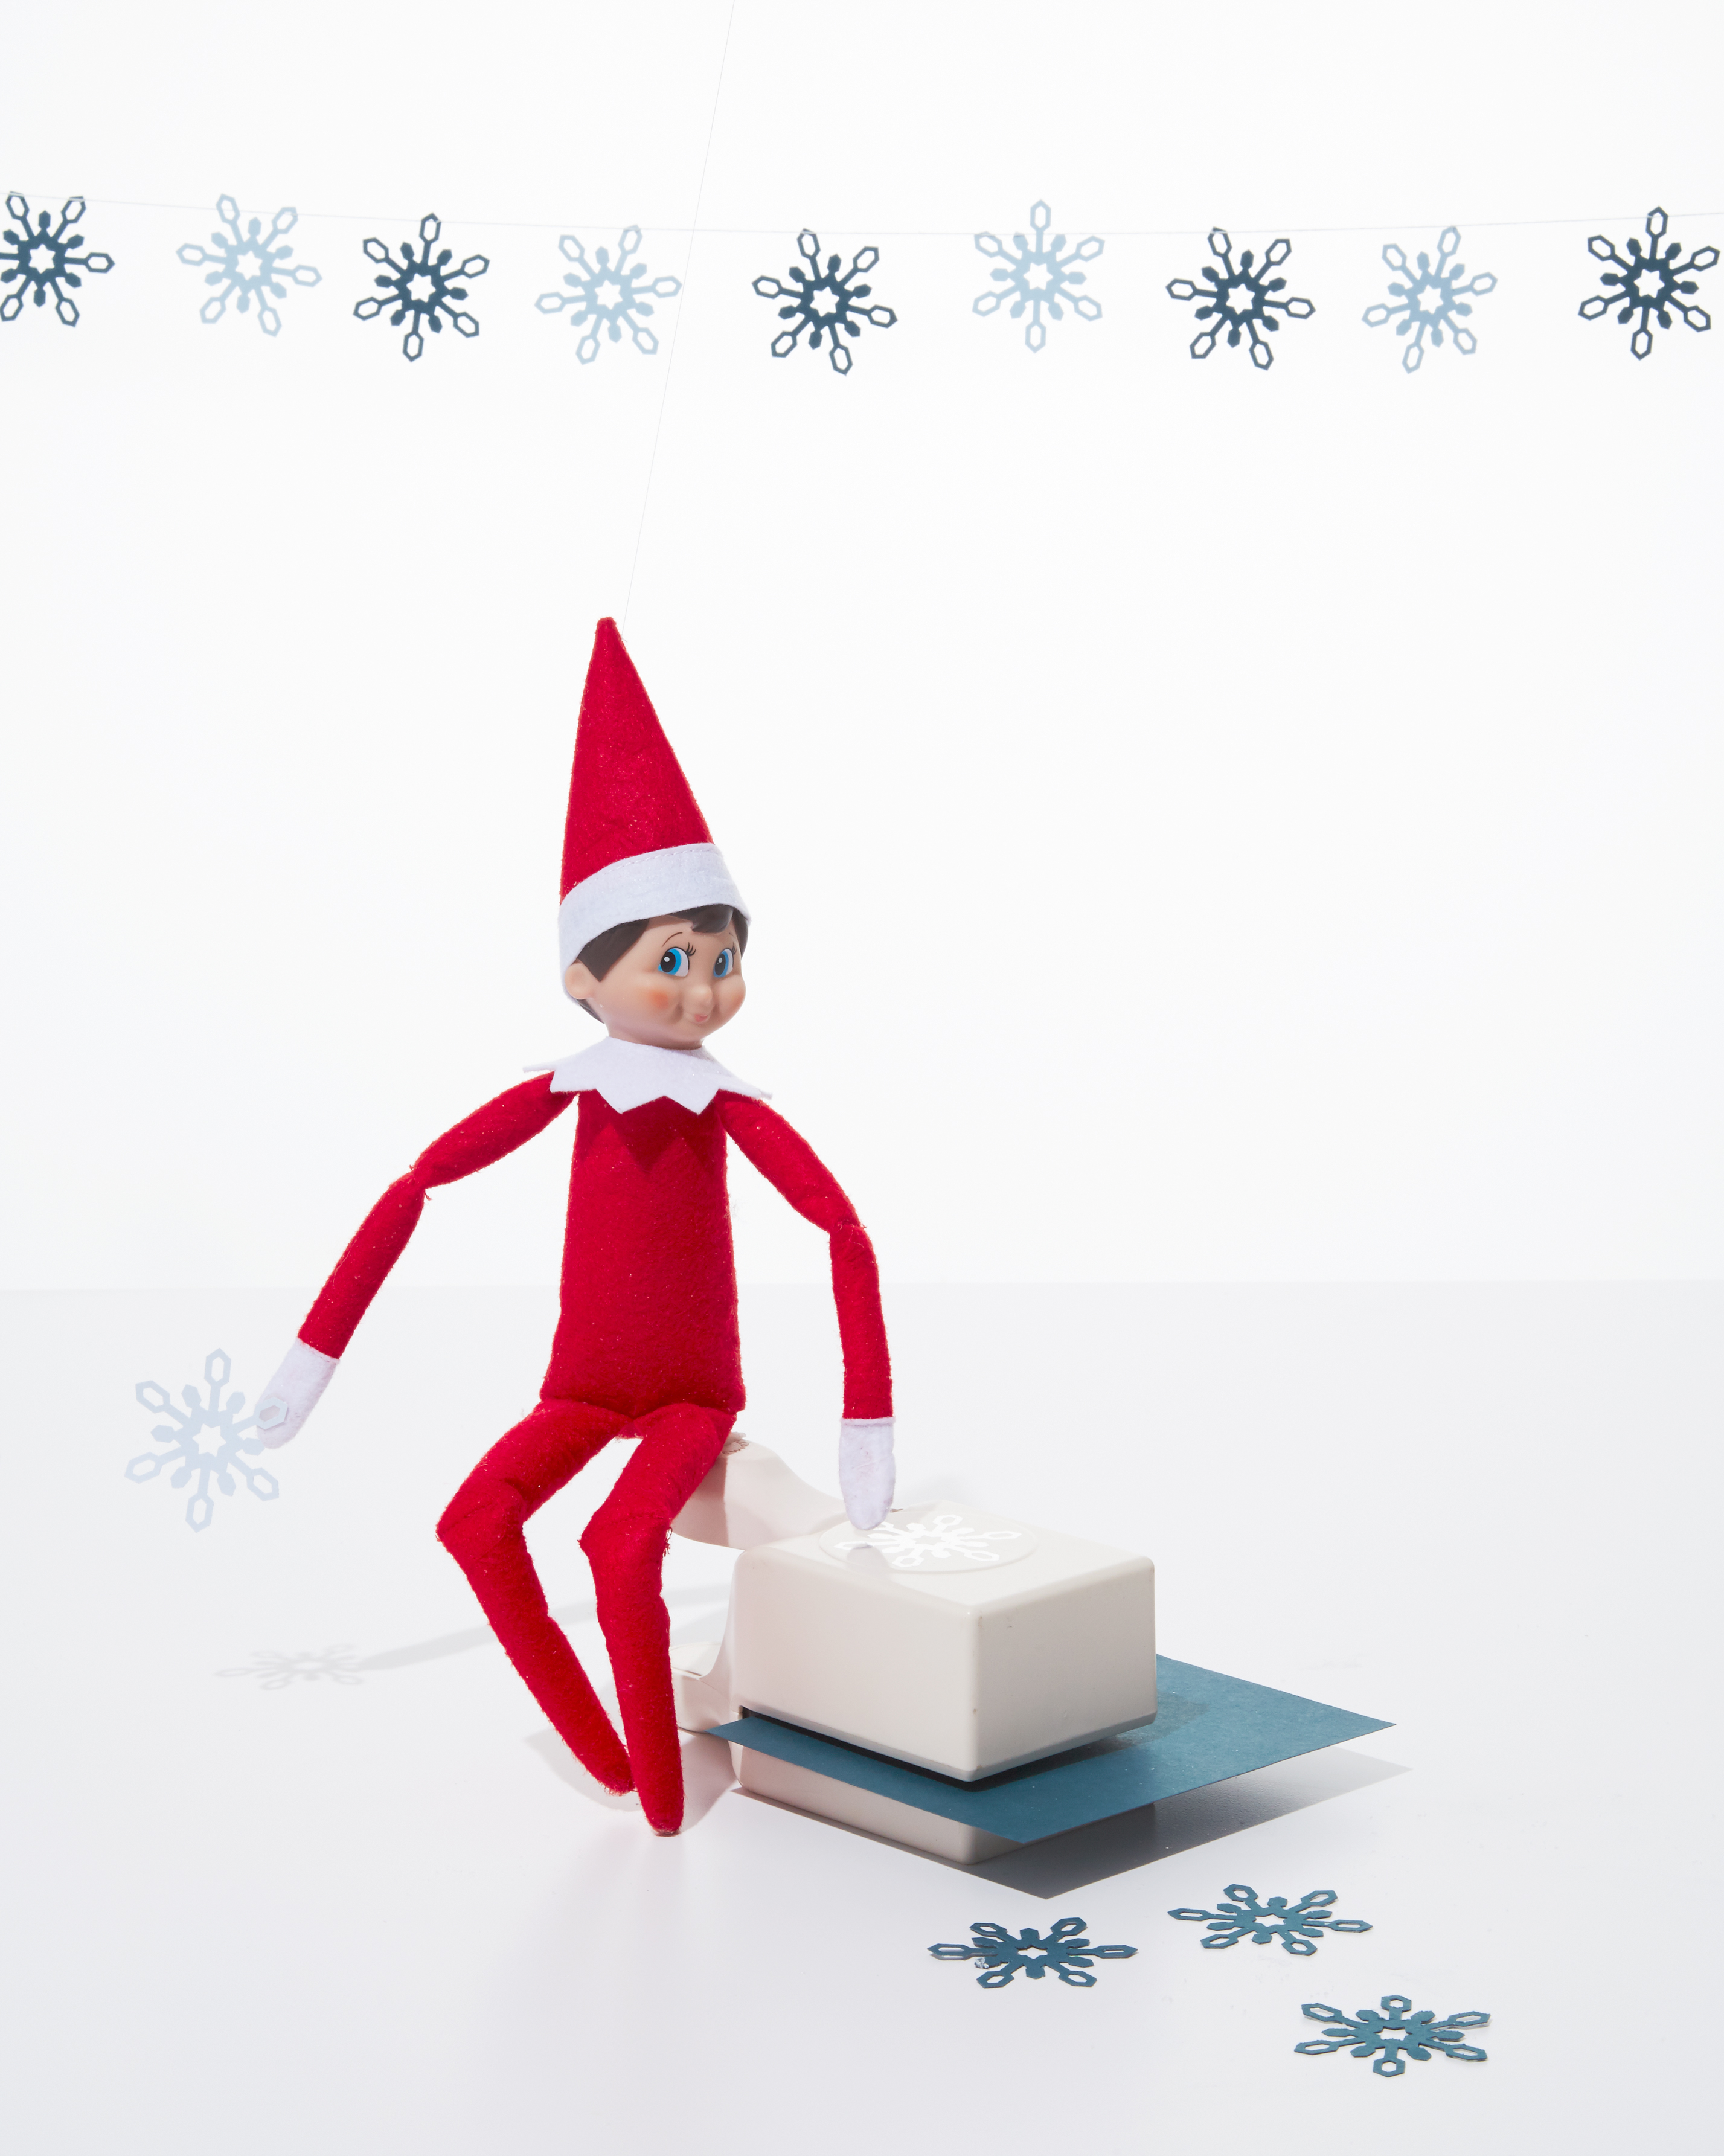 elf-on-shelf-snowflake-0297-d112640-1215.jpg